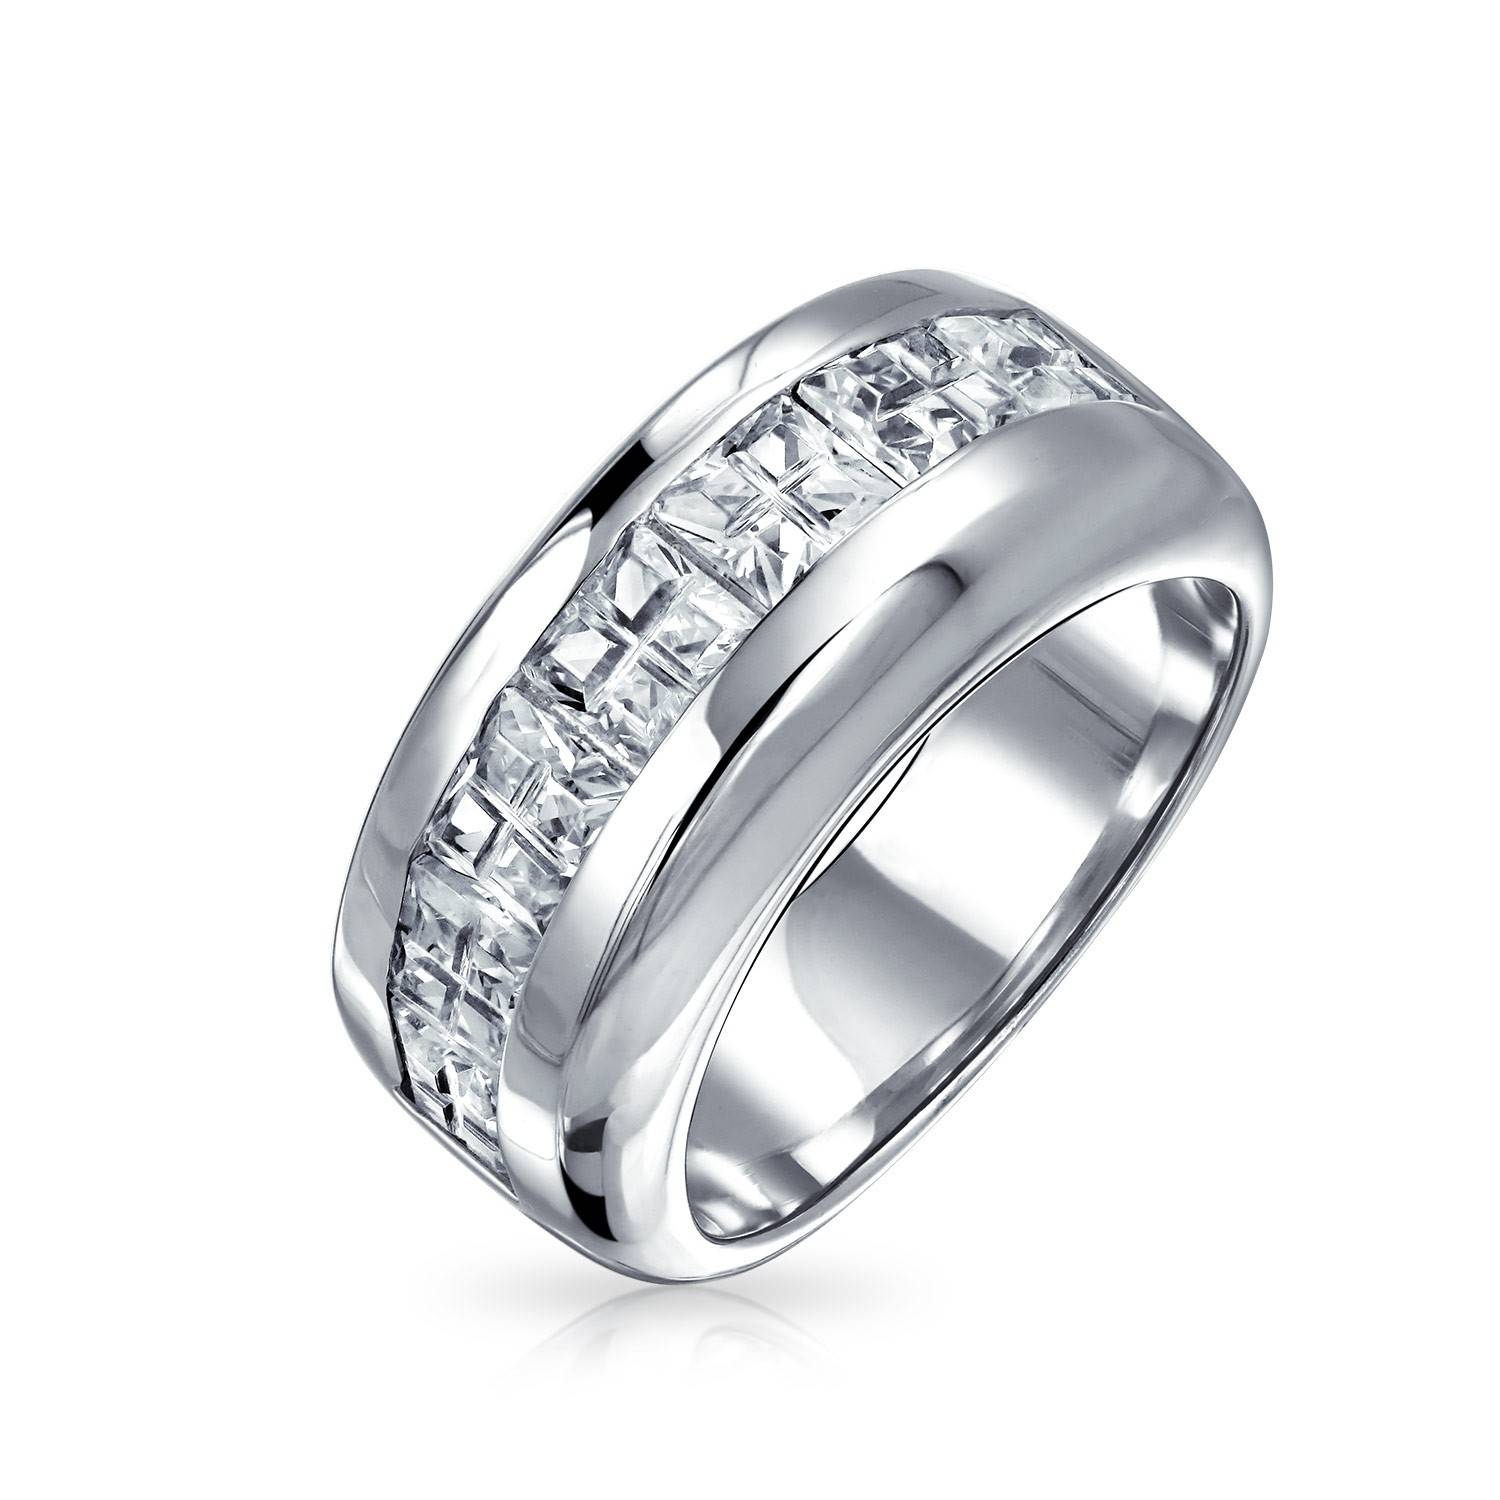 Sterling Silver Wedding Band Invisible Cut Cz Unisex Mens Ring Intended For Mens Sterling Wedding Bands (View 15 of 15)